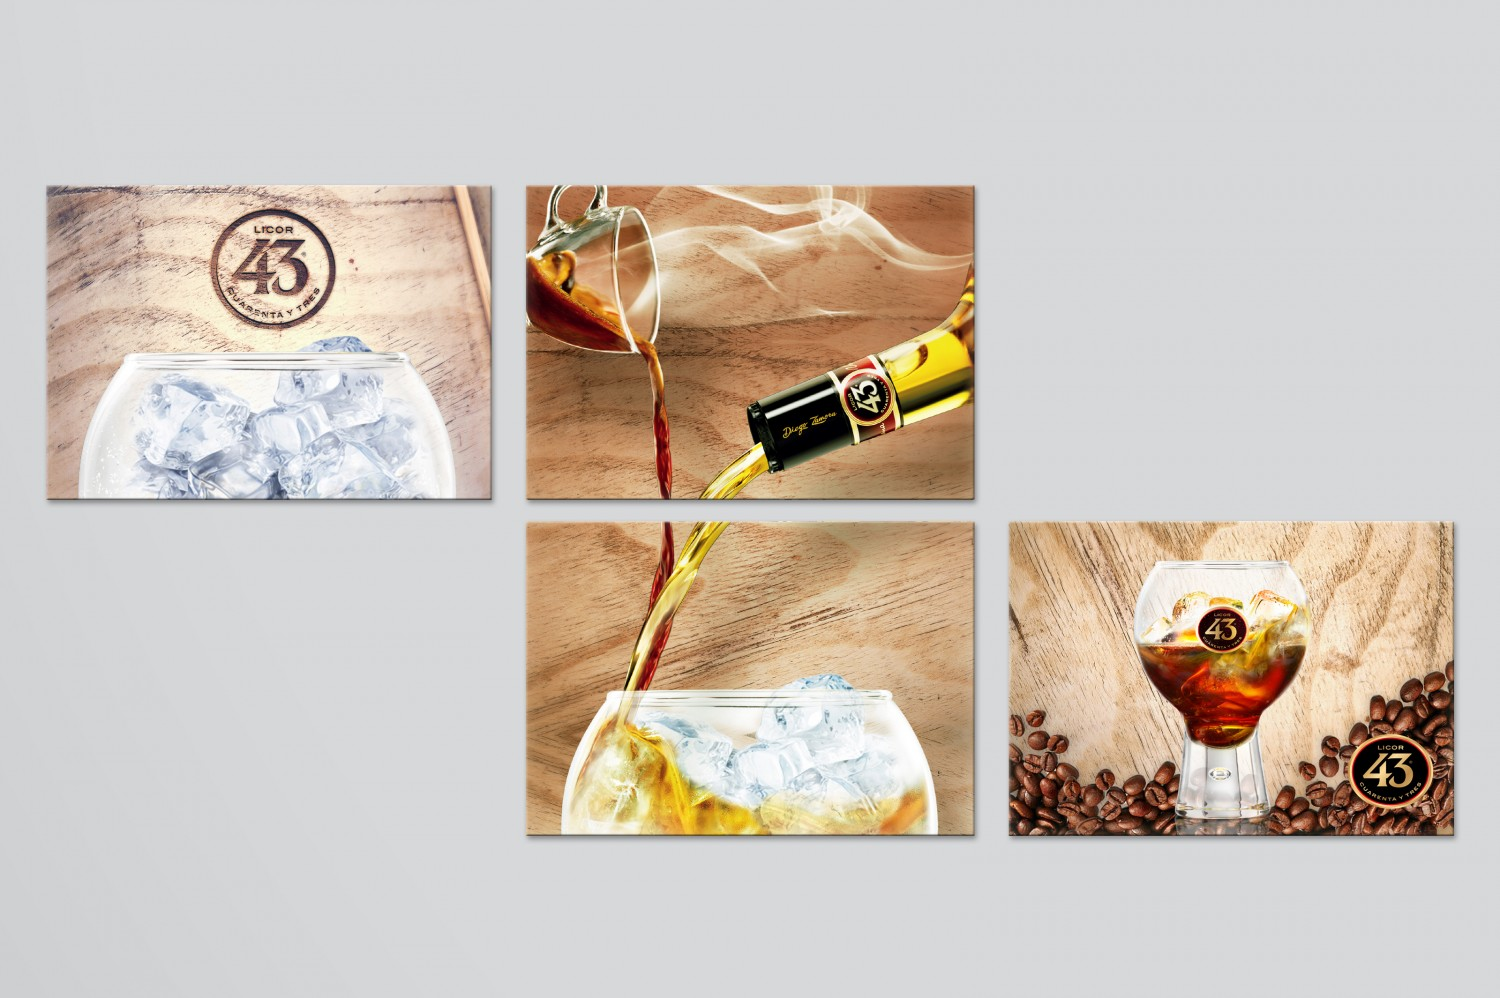 LICOR43 – DESIGN & MEDIAPRODUCTION